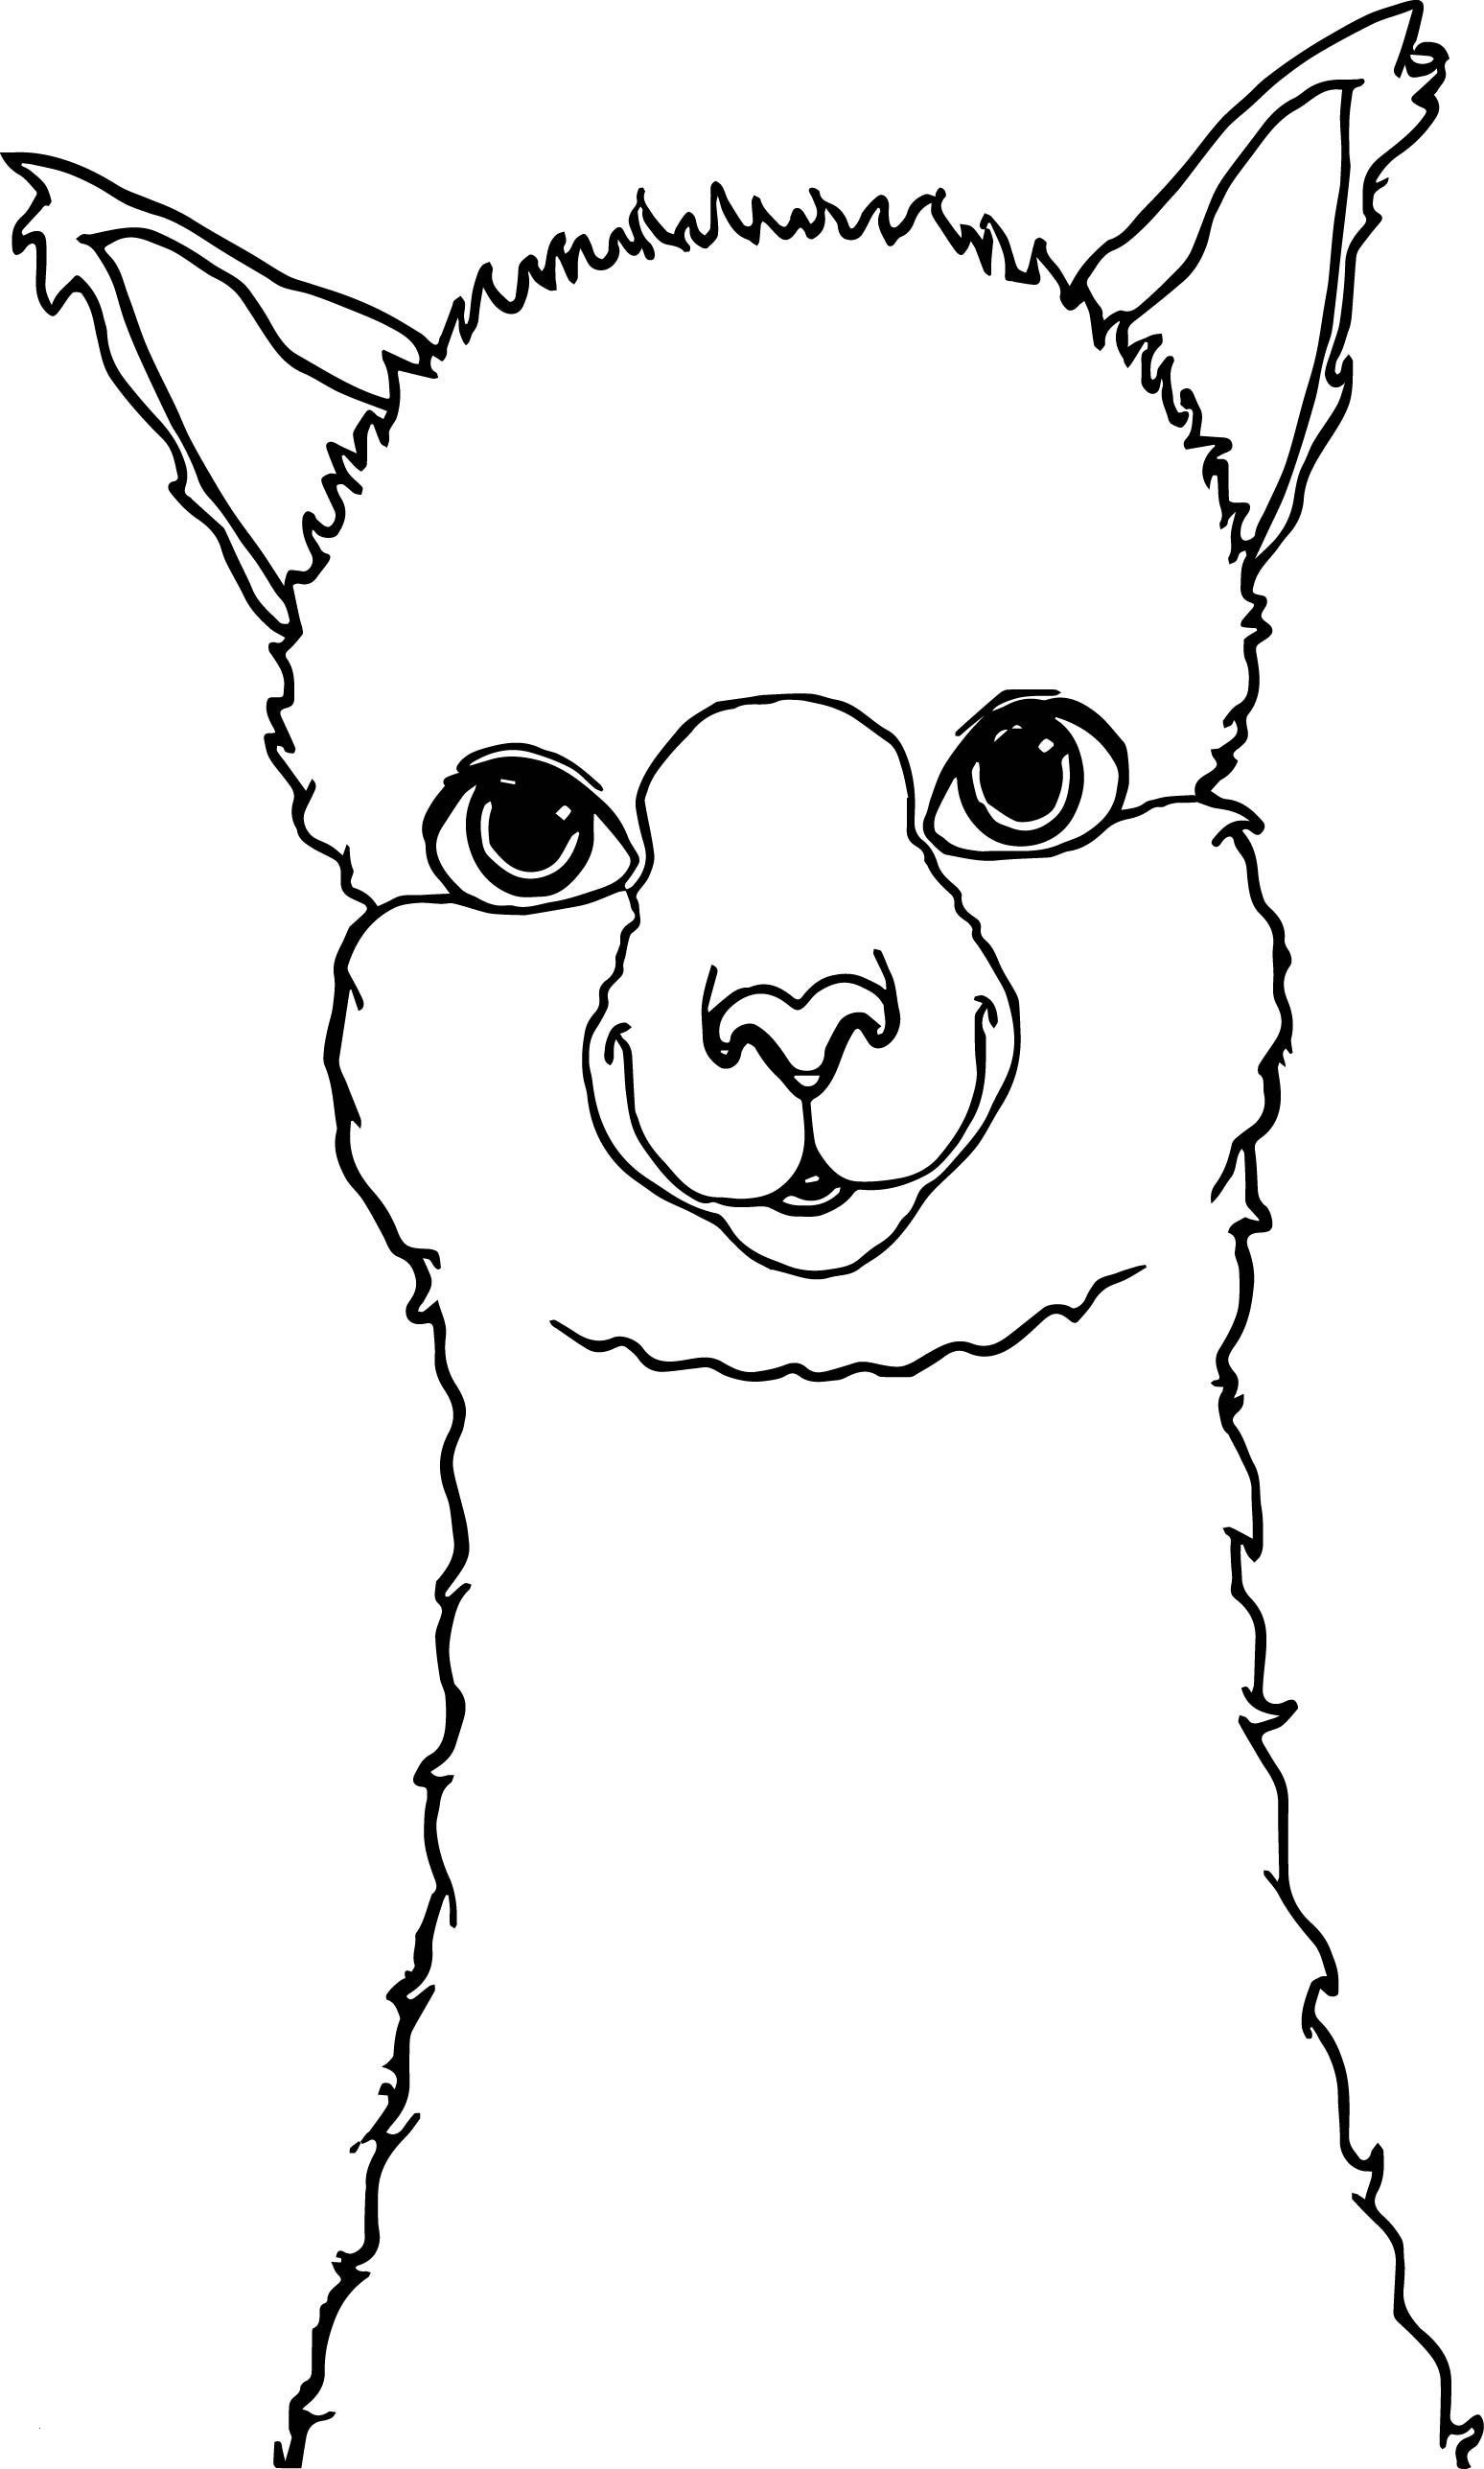 The Legend Of Zelda Ausmalbilder Genial Alpaca Drawing Coloring Page Alpaca Farm Pinterest Schön Fotos